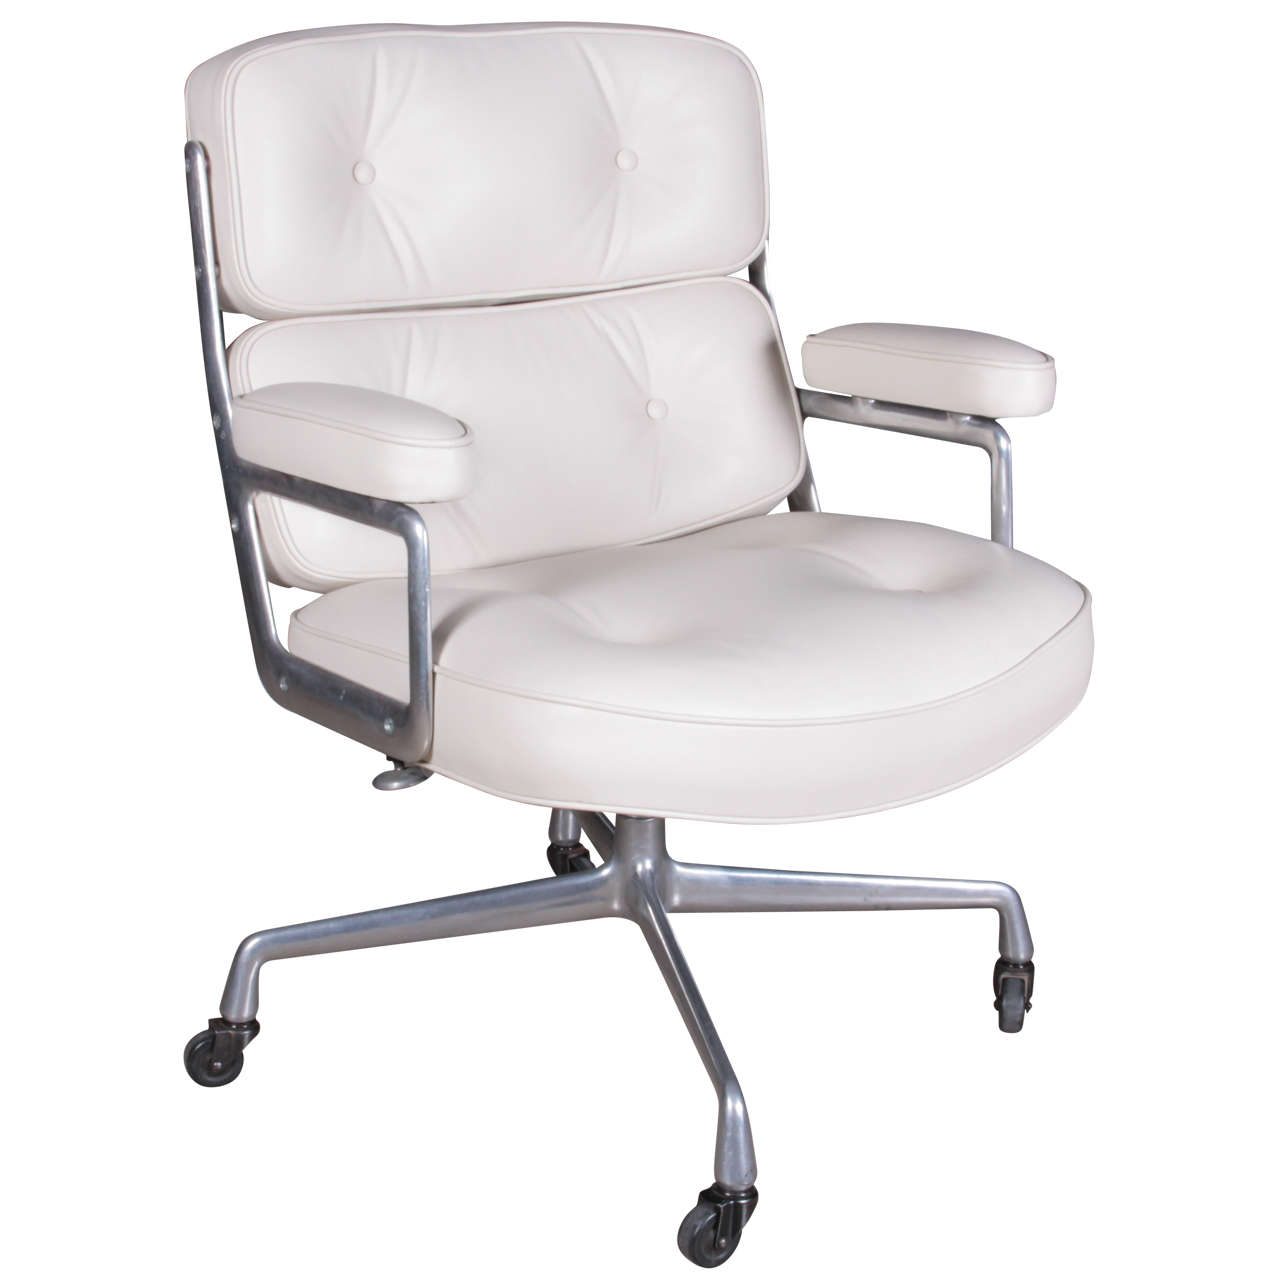 Charles Eames Time Life Chair at 1stdibs